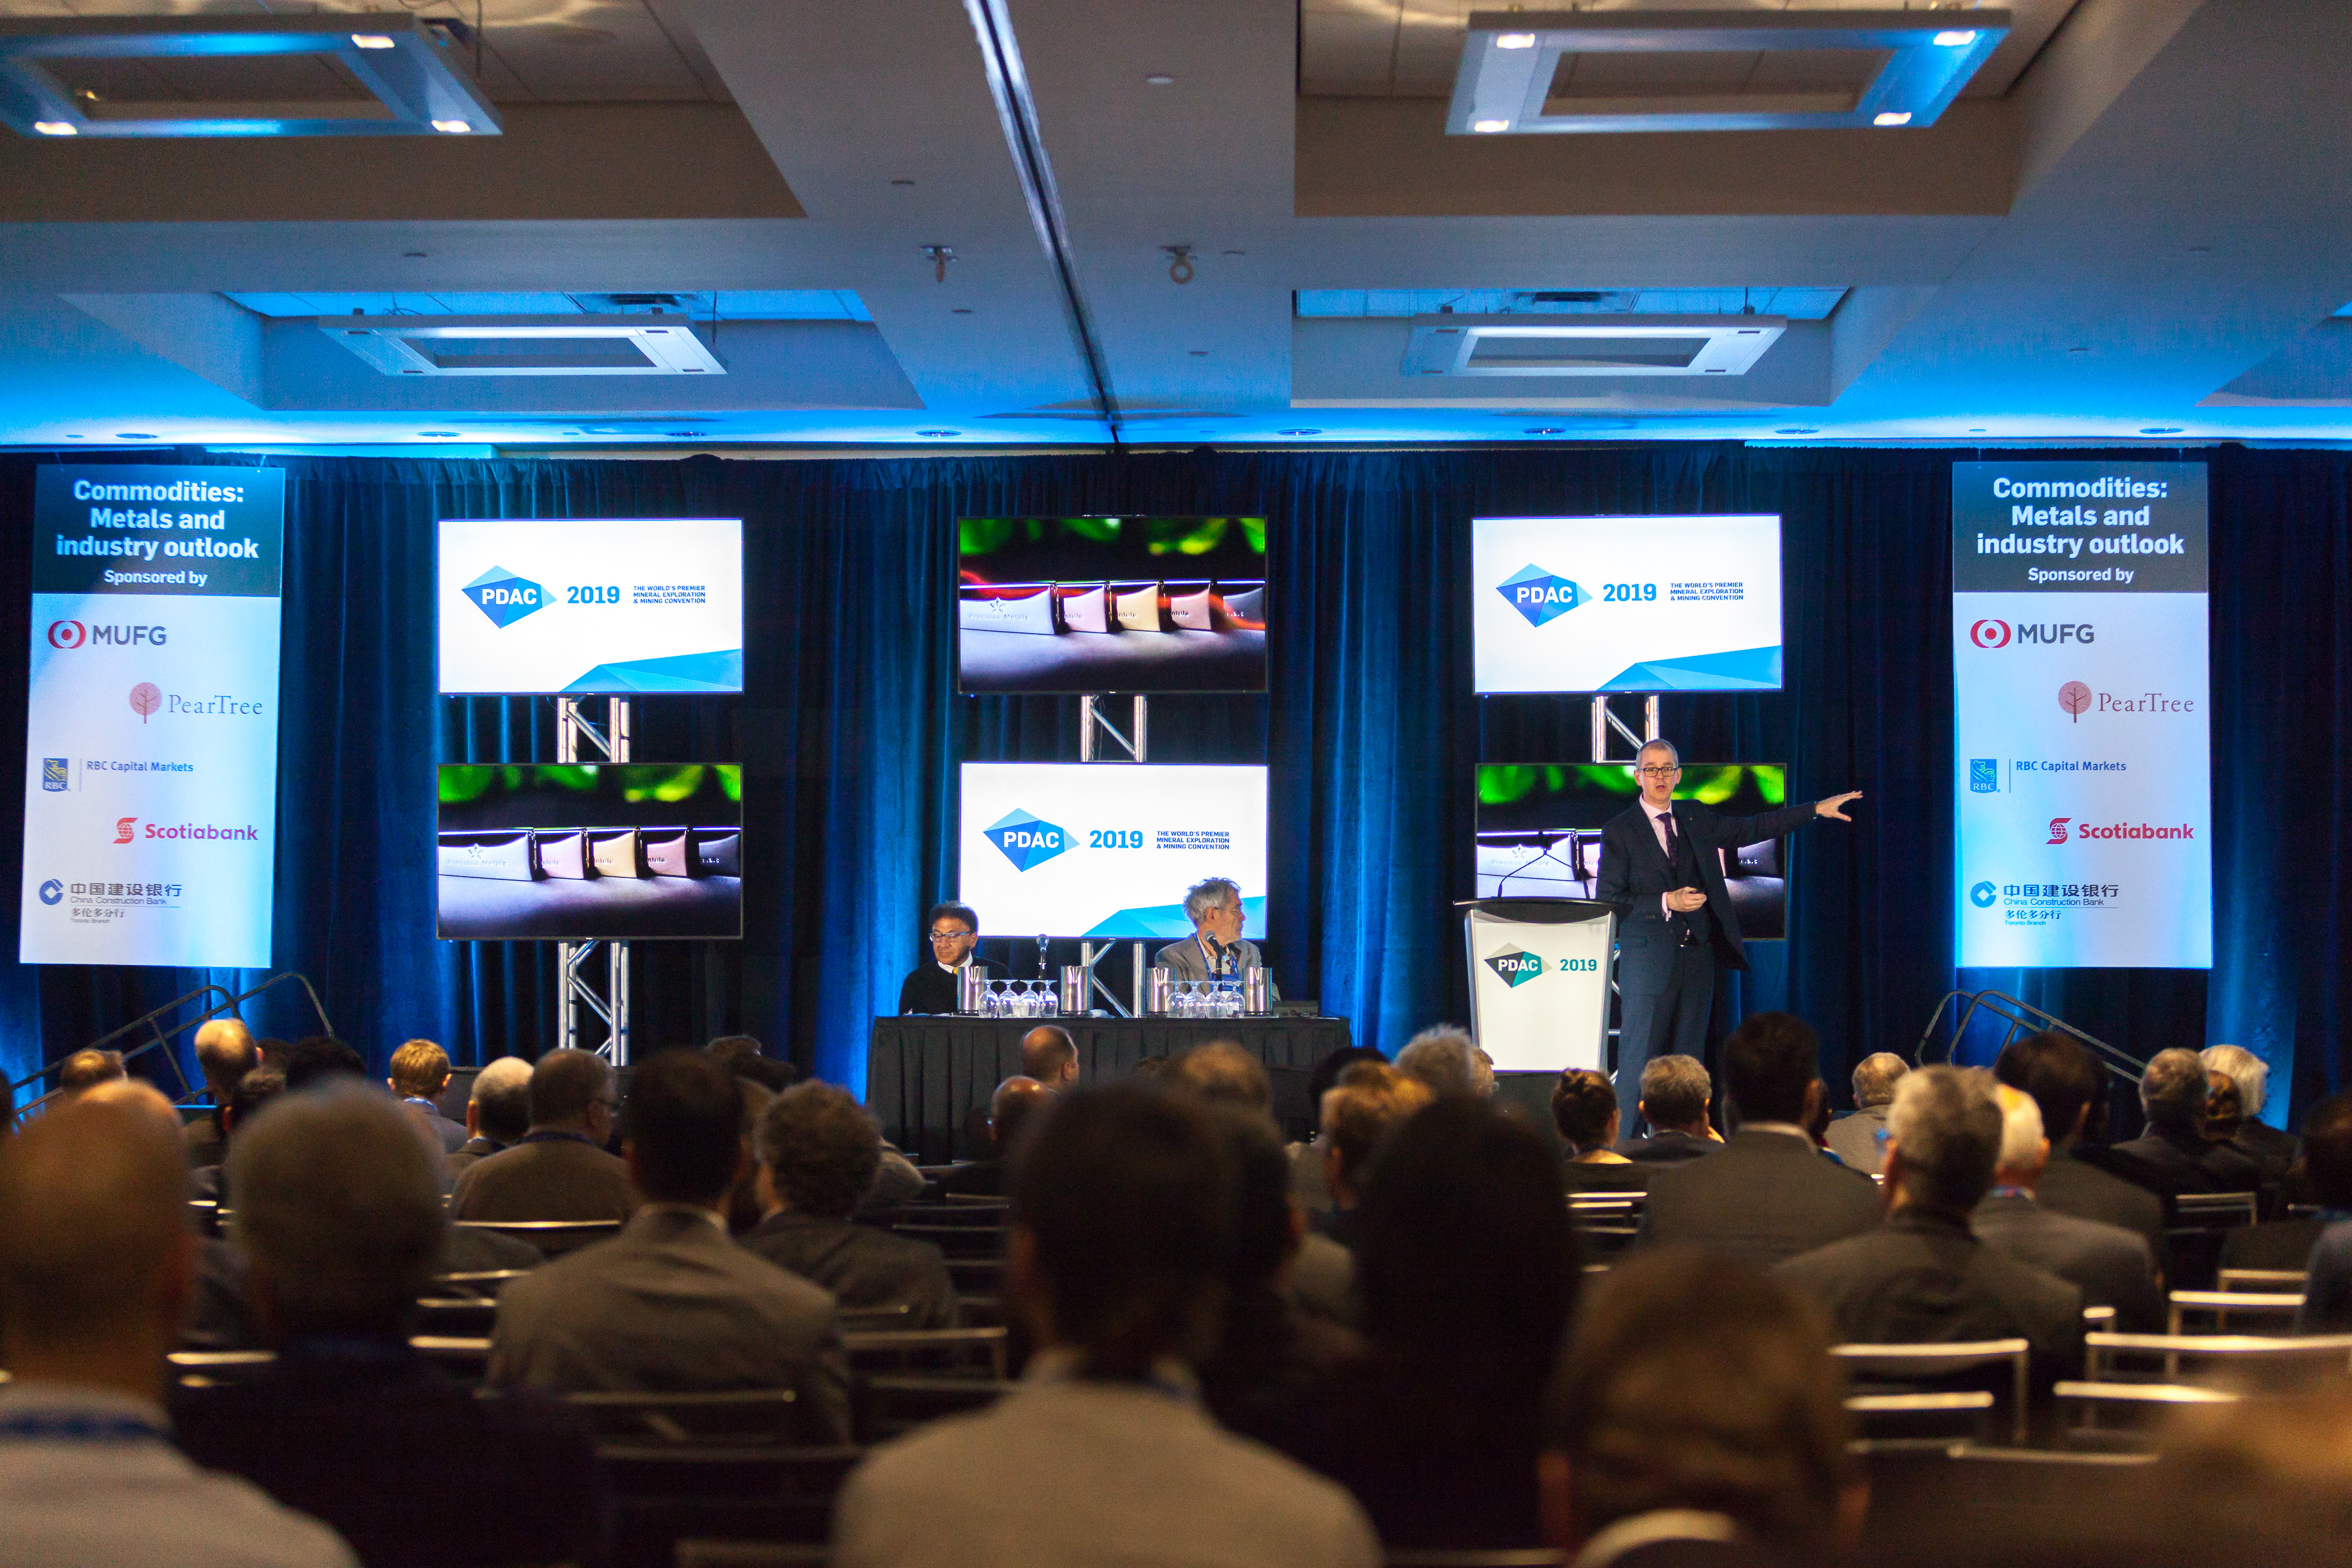 PDAC 2020: The World's Premier Mineral Exploration & Mining Convention